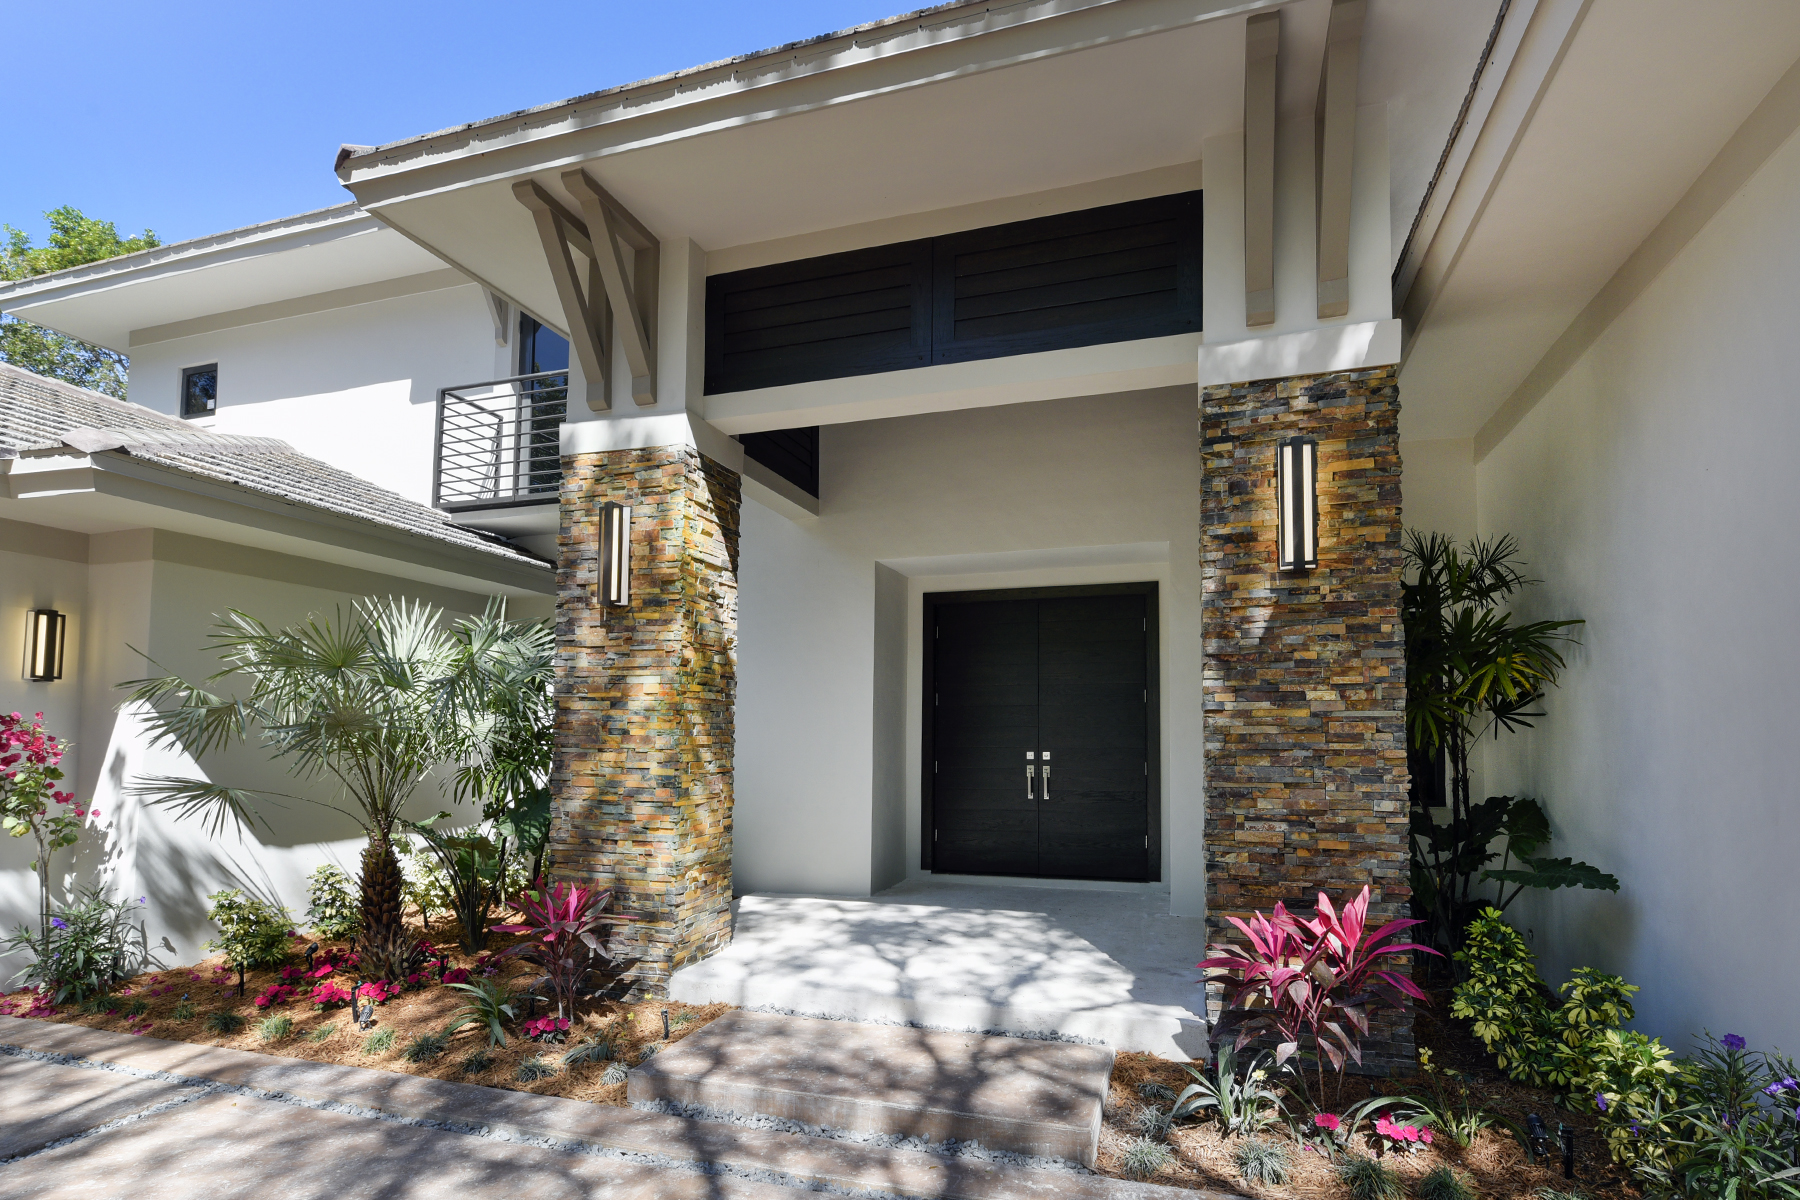 Additional photo for property listing at New Construction Golf Course Home at Ocean Reef 11 Cinnamon Bark Lane Key Largo, Florida 33037 Estados Unidos